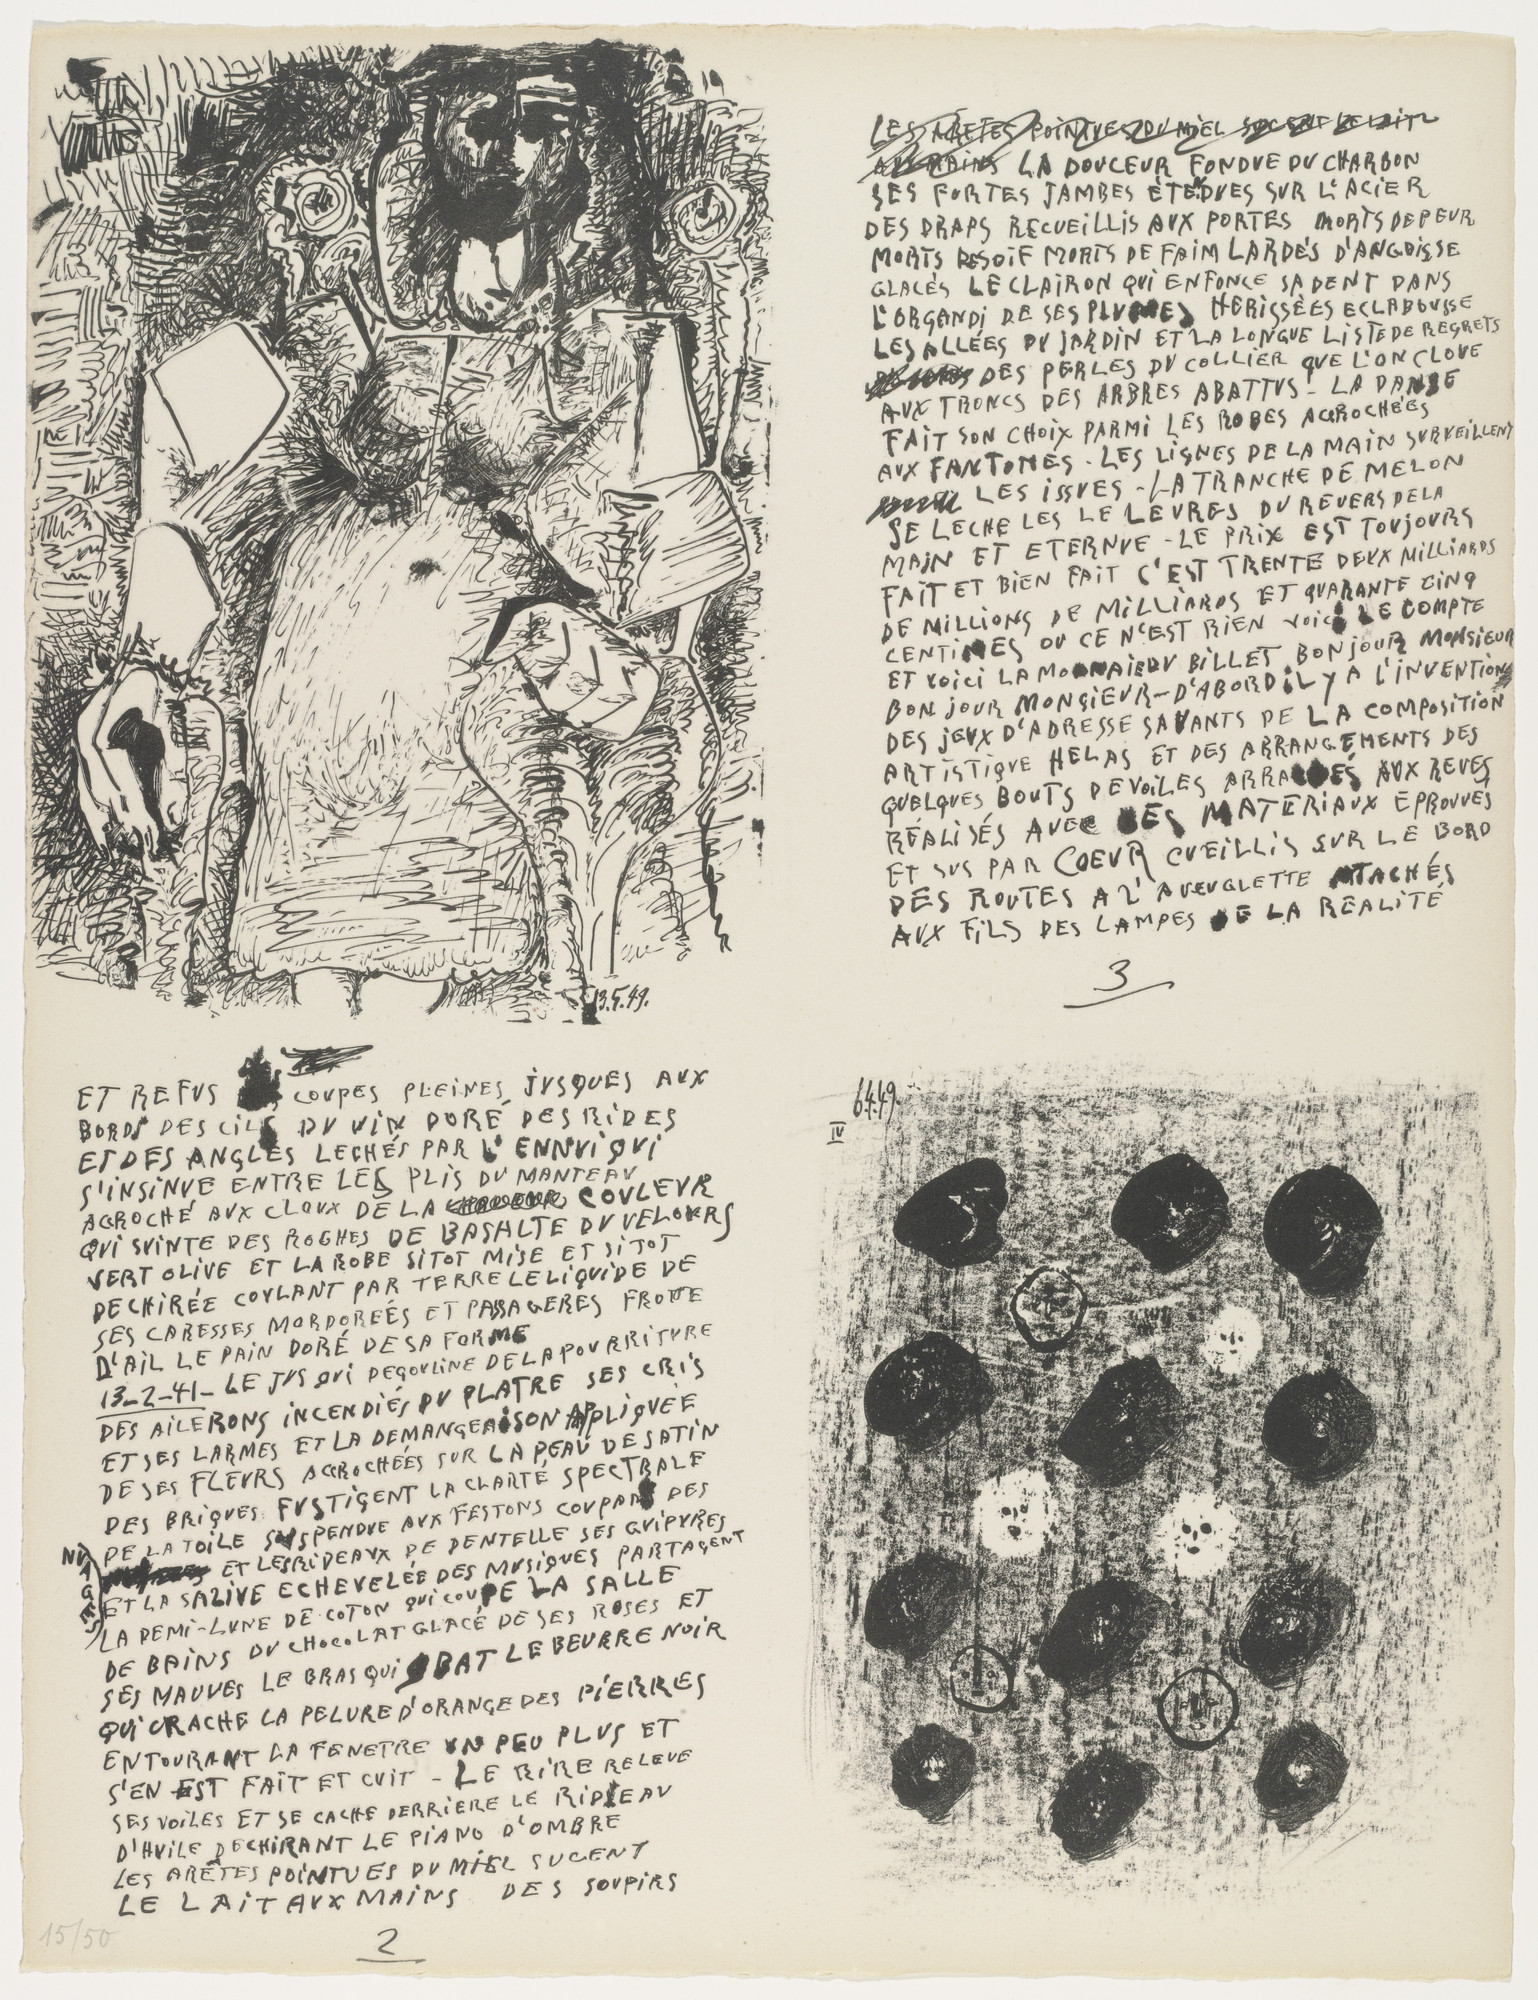 Pablo Picasso. In-text plates (folio 2) from Poèmes et lithographies. 1949, published 1954